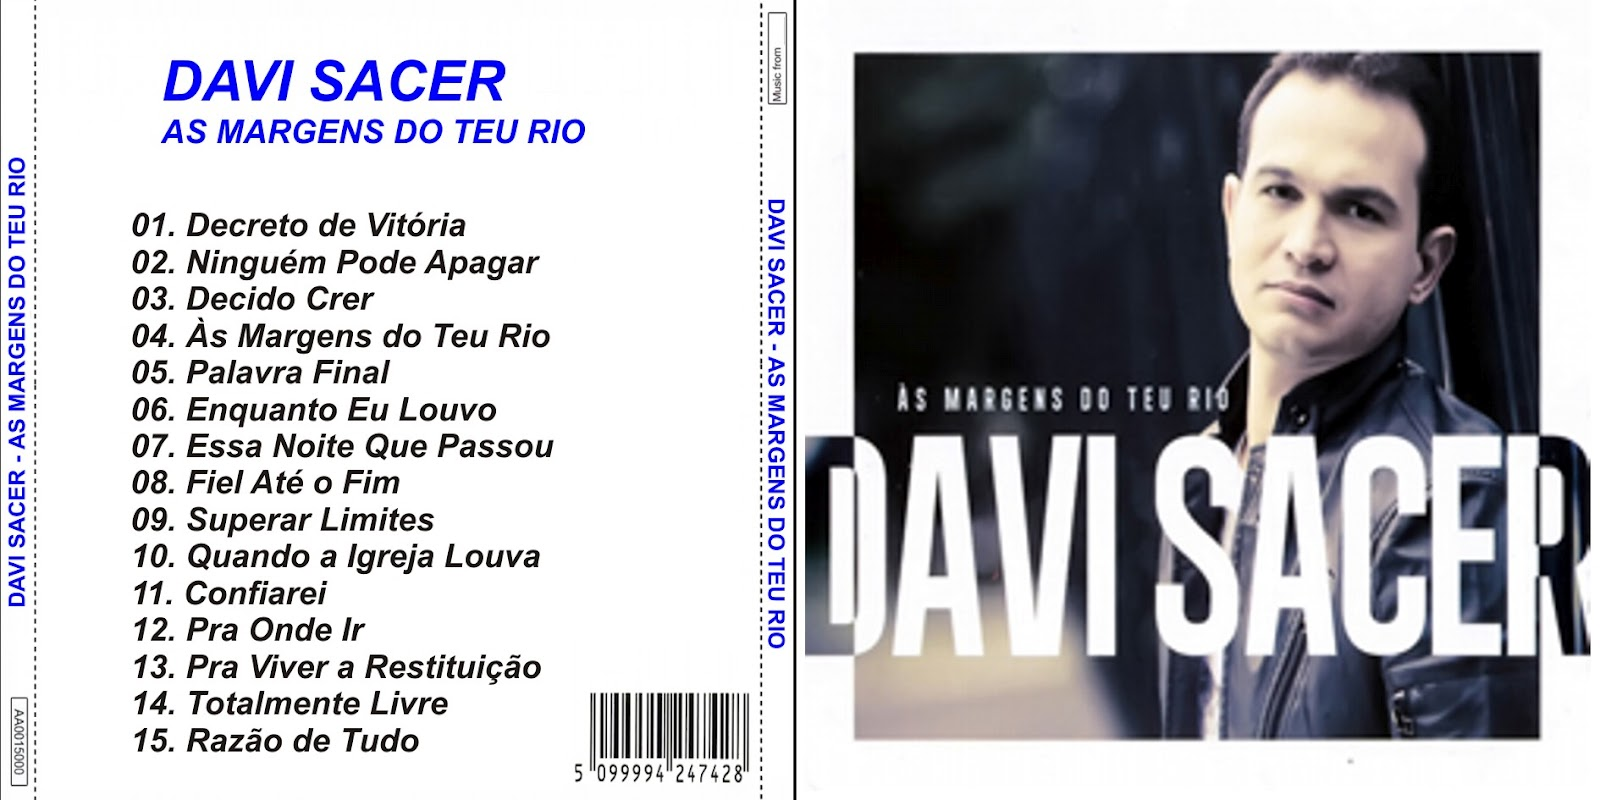 cd completo davi sacer as margens do teu rio